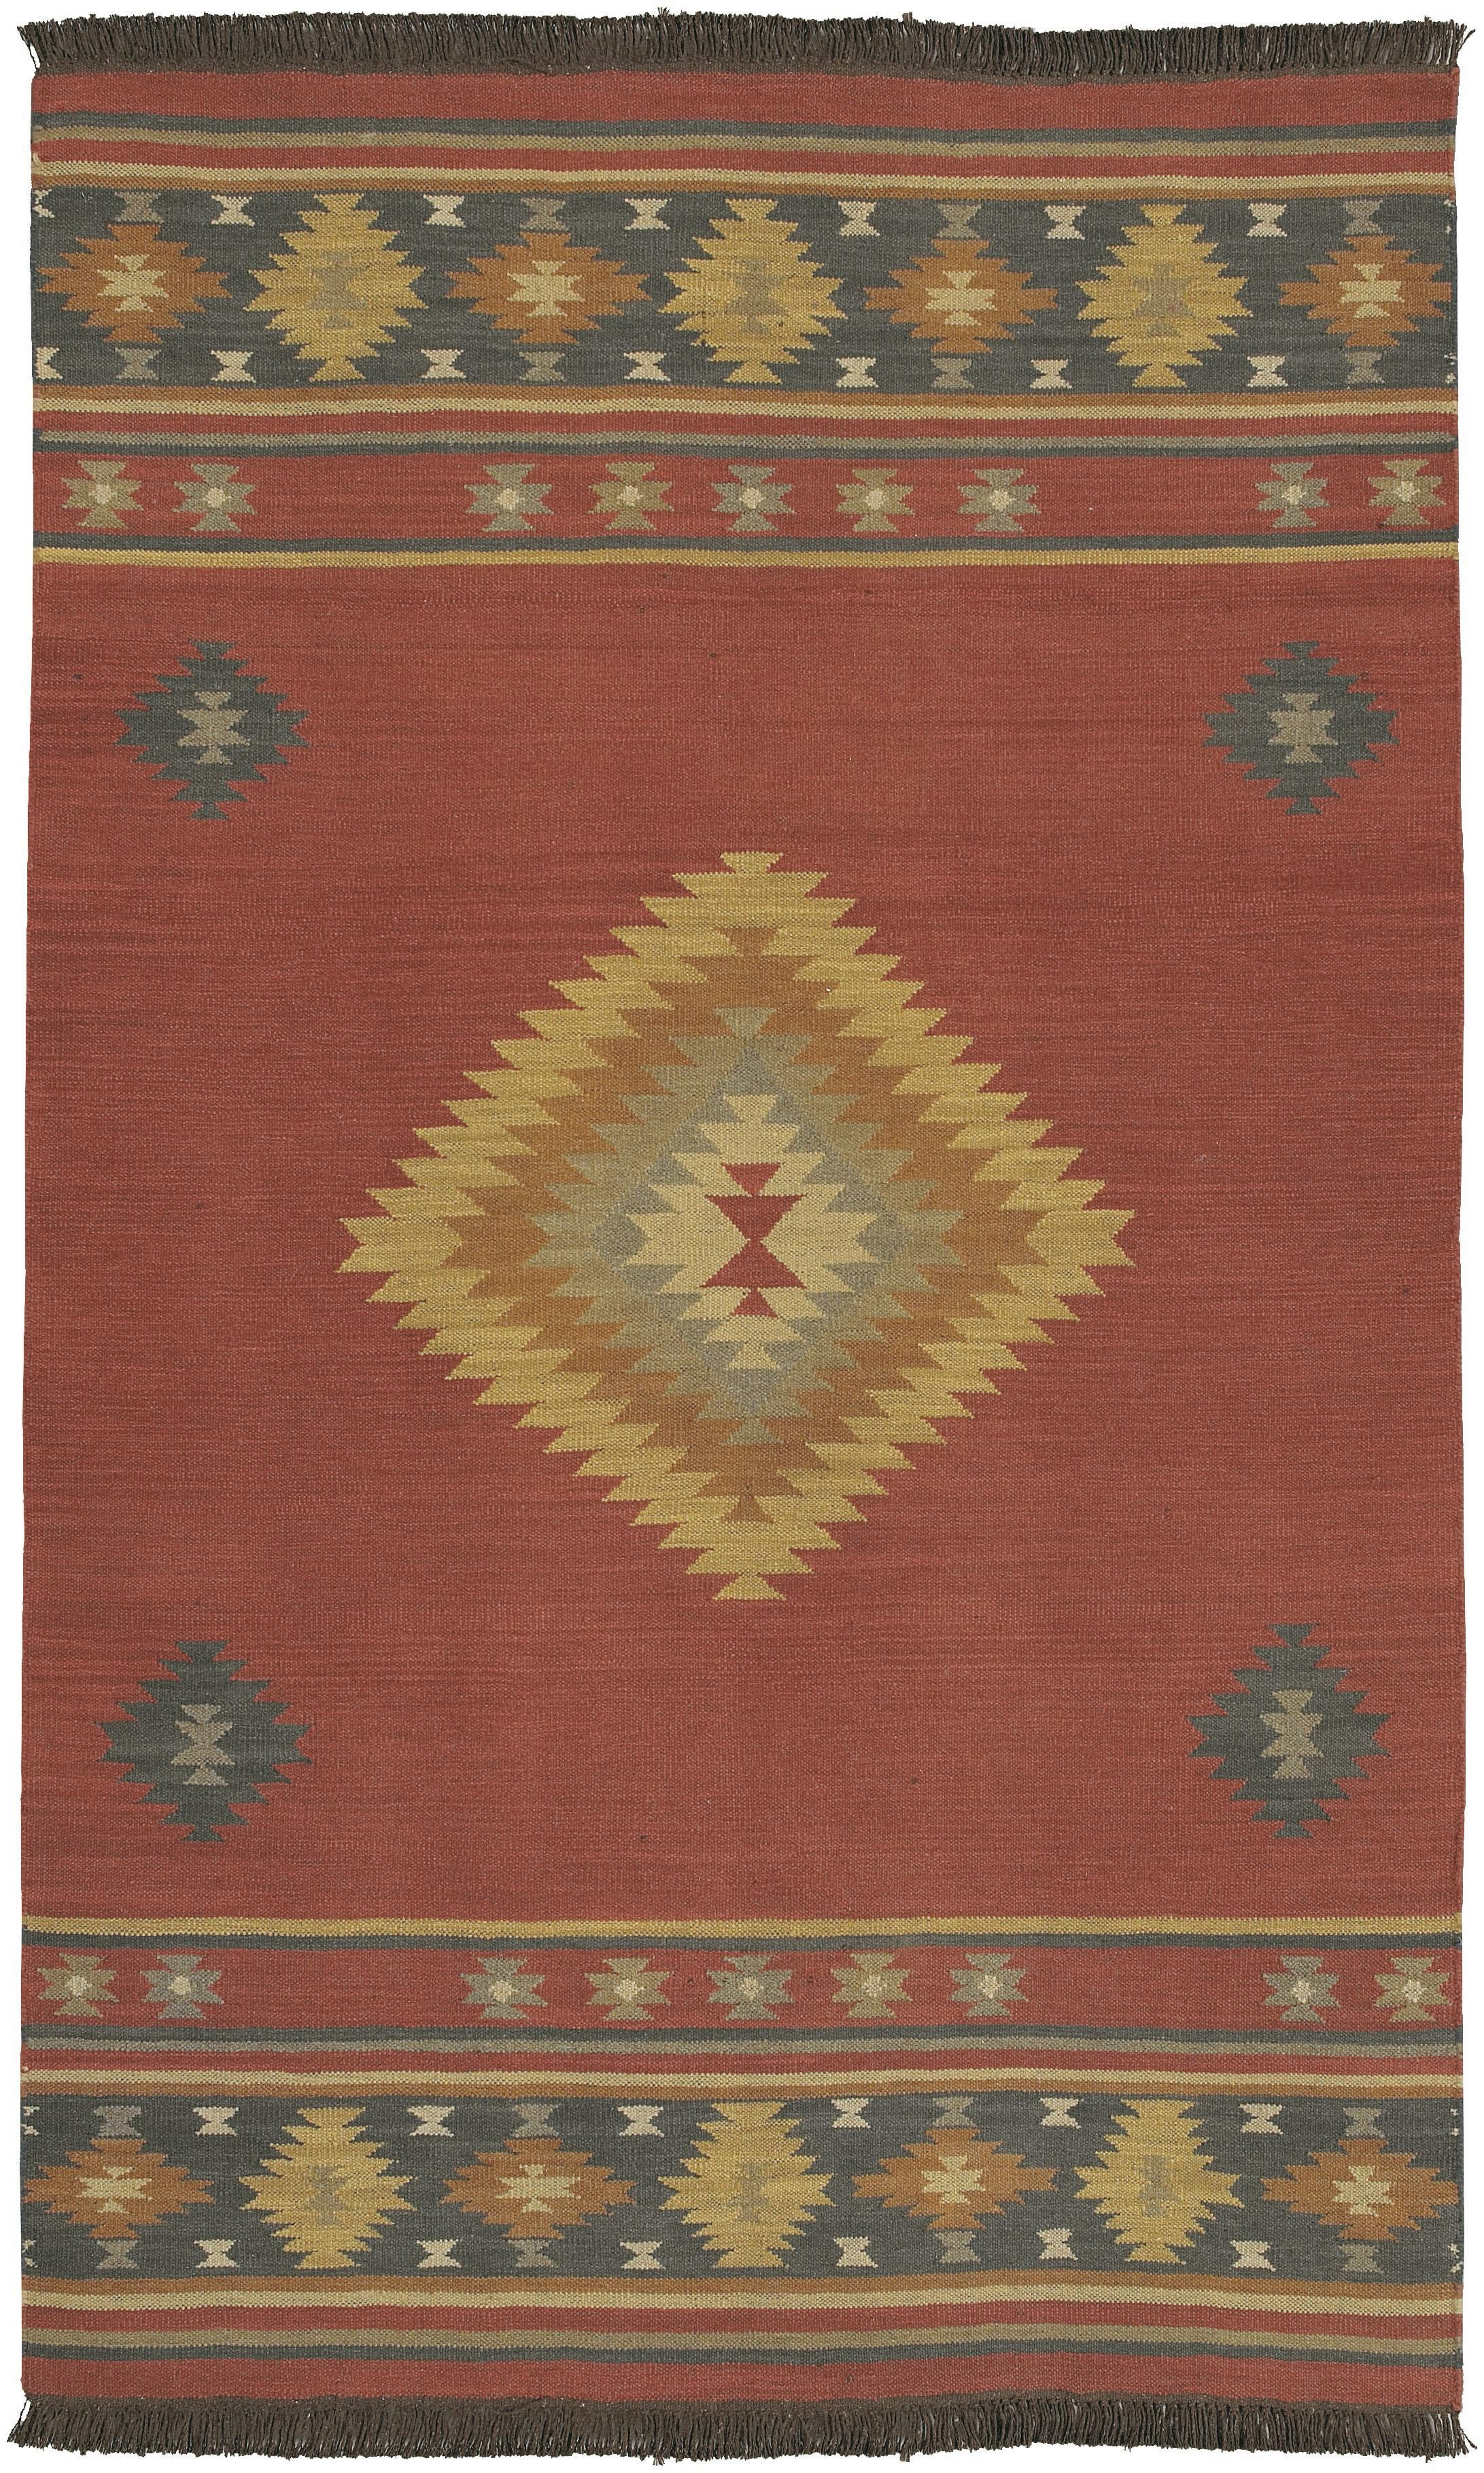 Surya Rugs Jewel Tone 9' x 13' - Item Number: JT1033-913